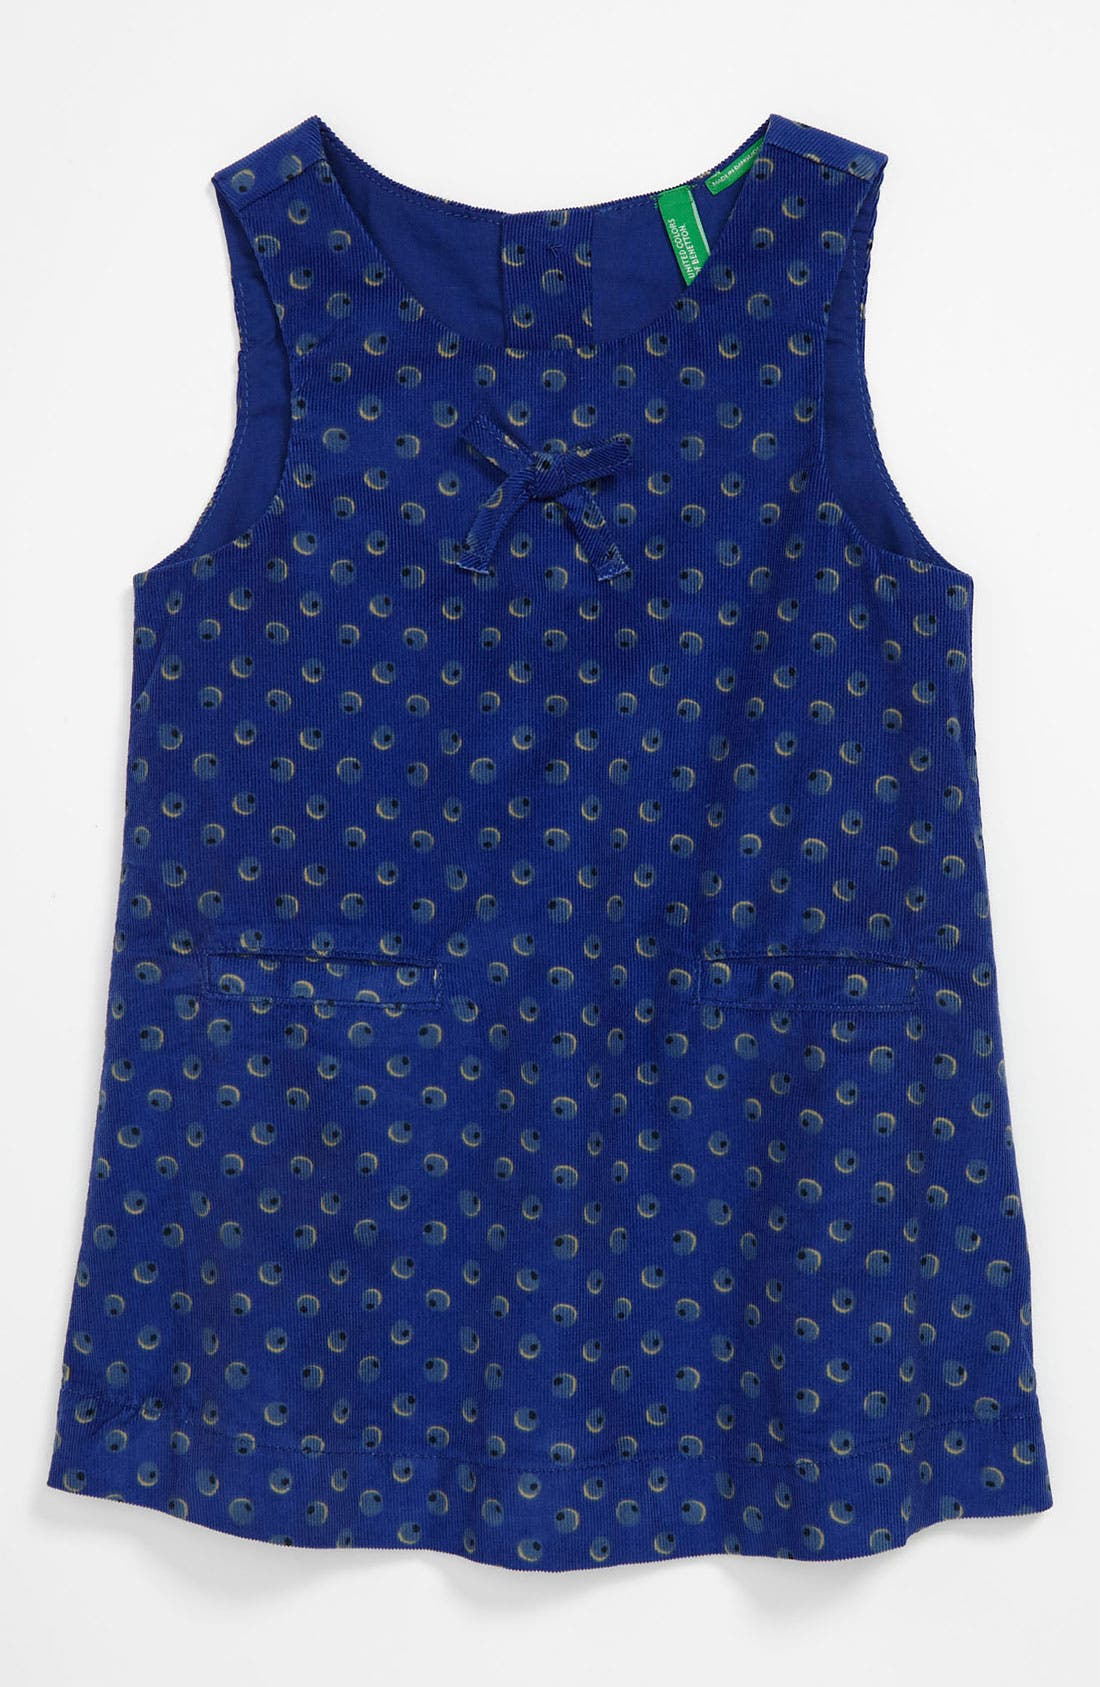 Main Image - United Colors of Benetton Kids Corduroy Dress (Toddler)